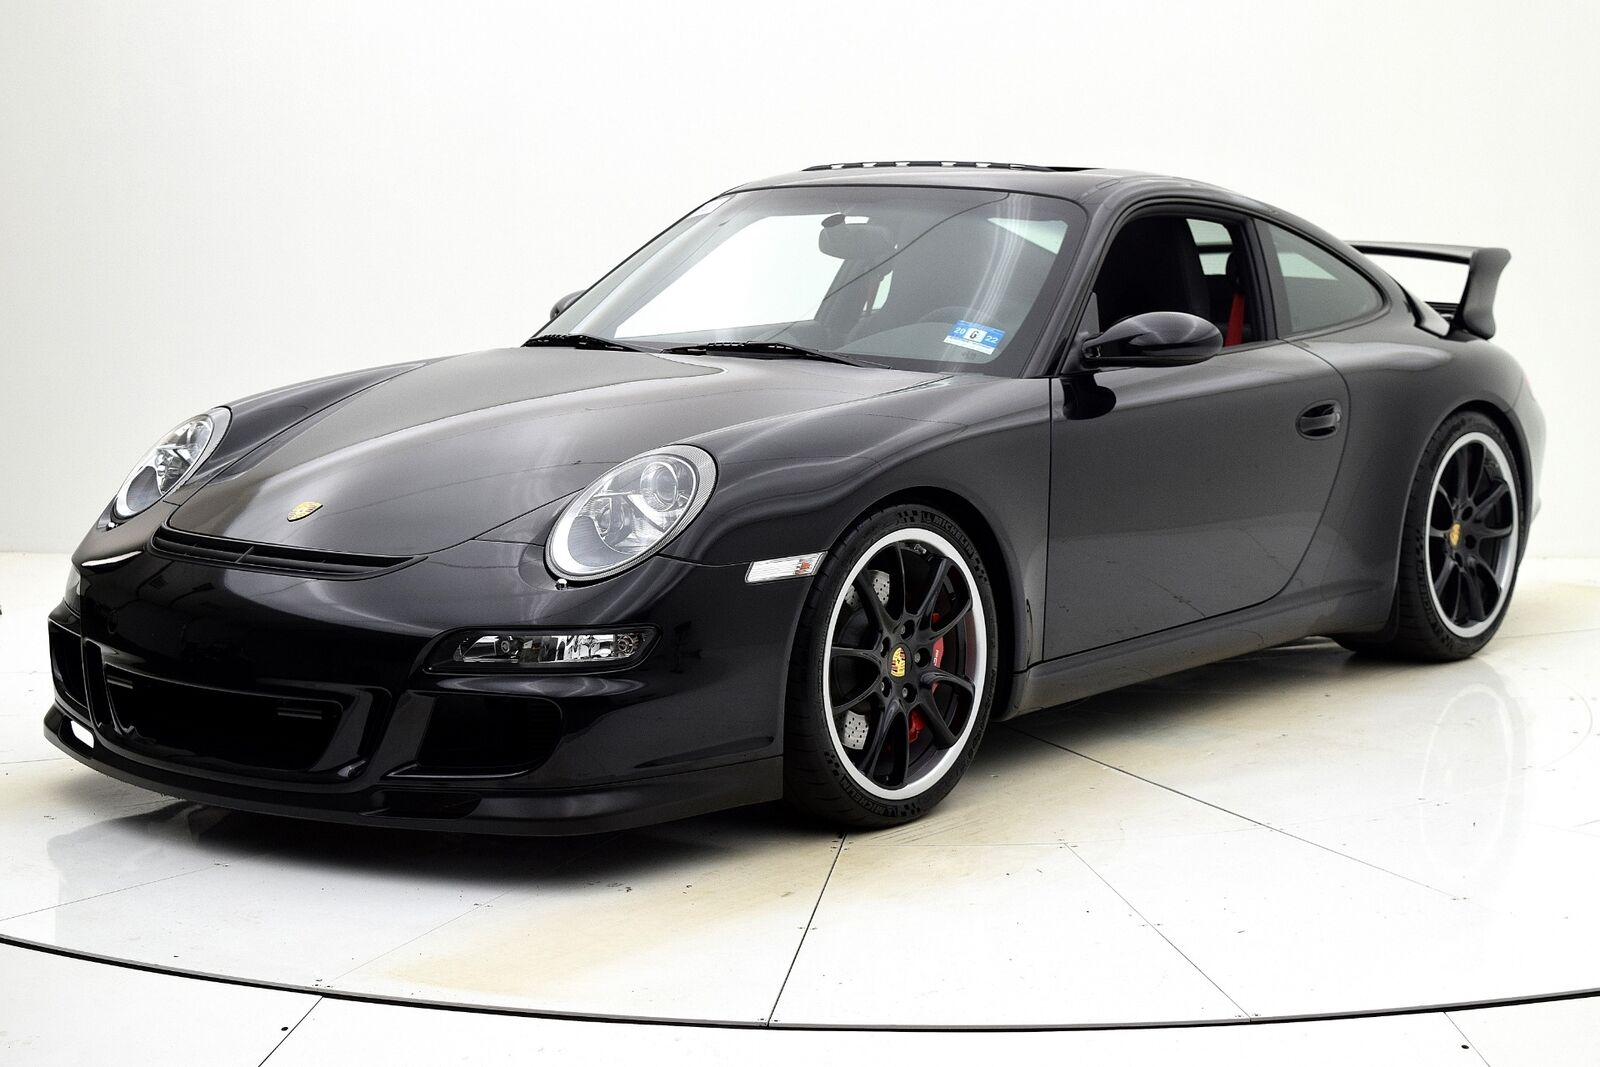 2007 Porsche 911 GT3, Very Rare, Only 917 Built, Only 6,123 Miles